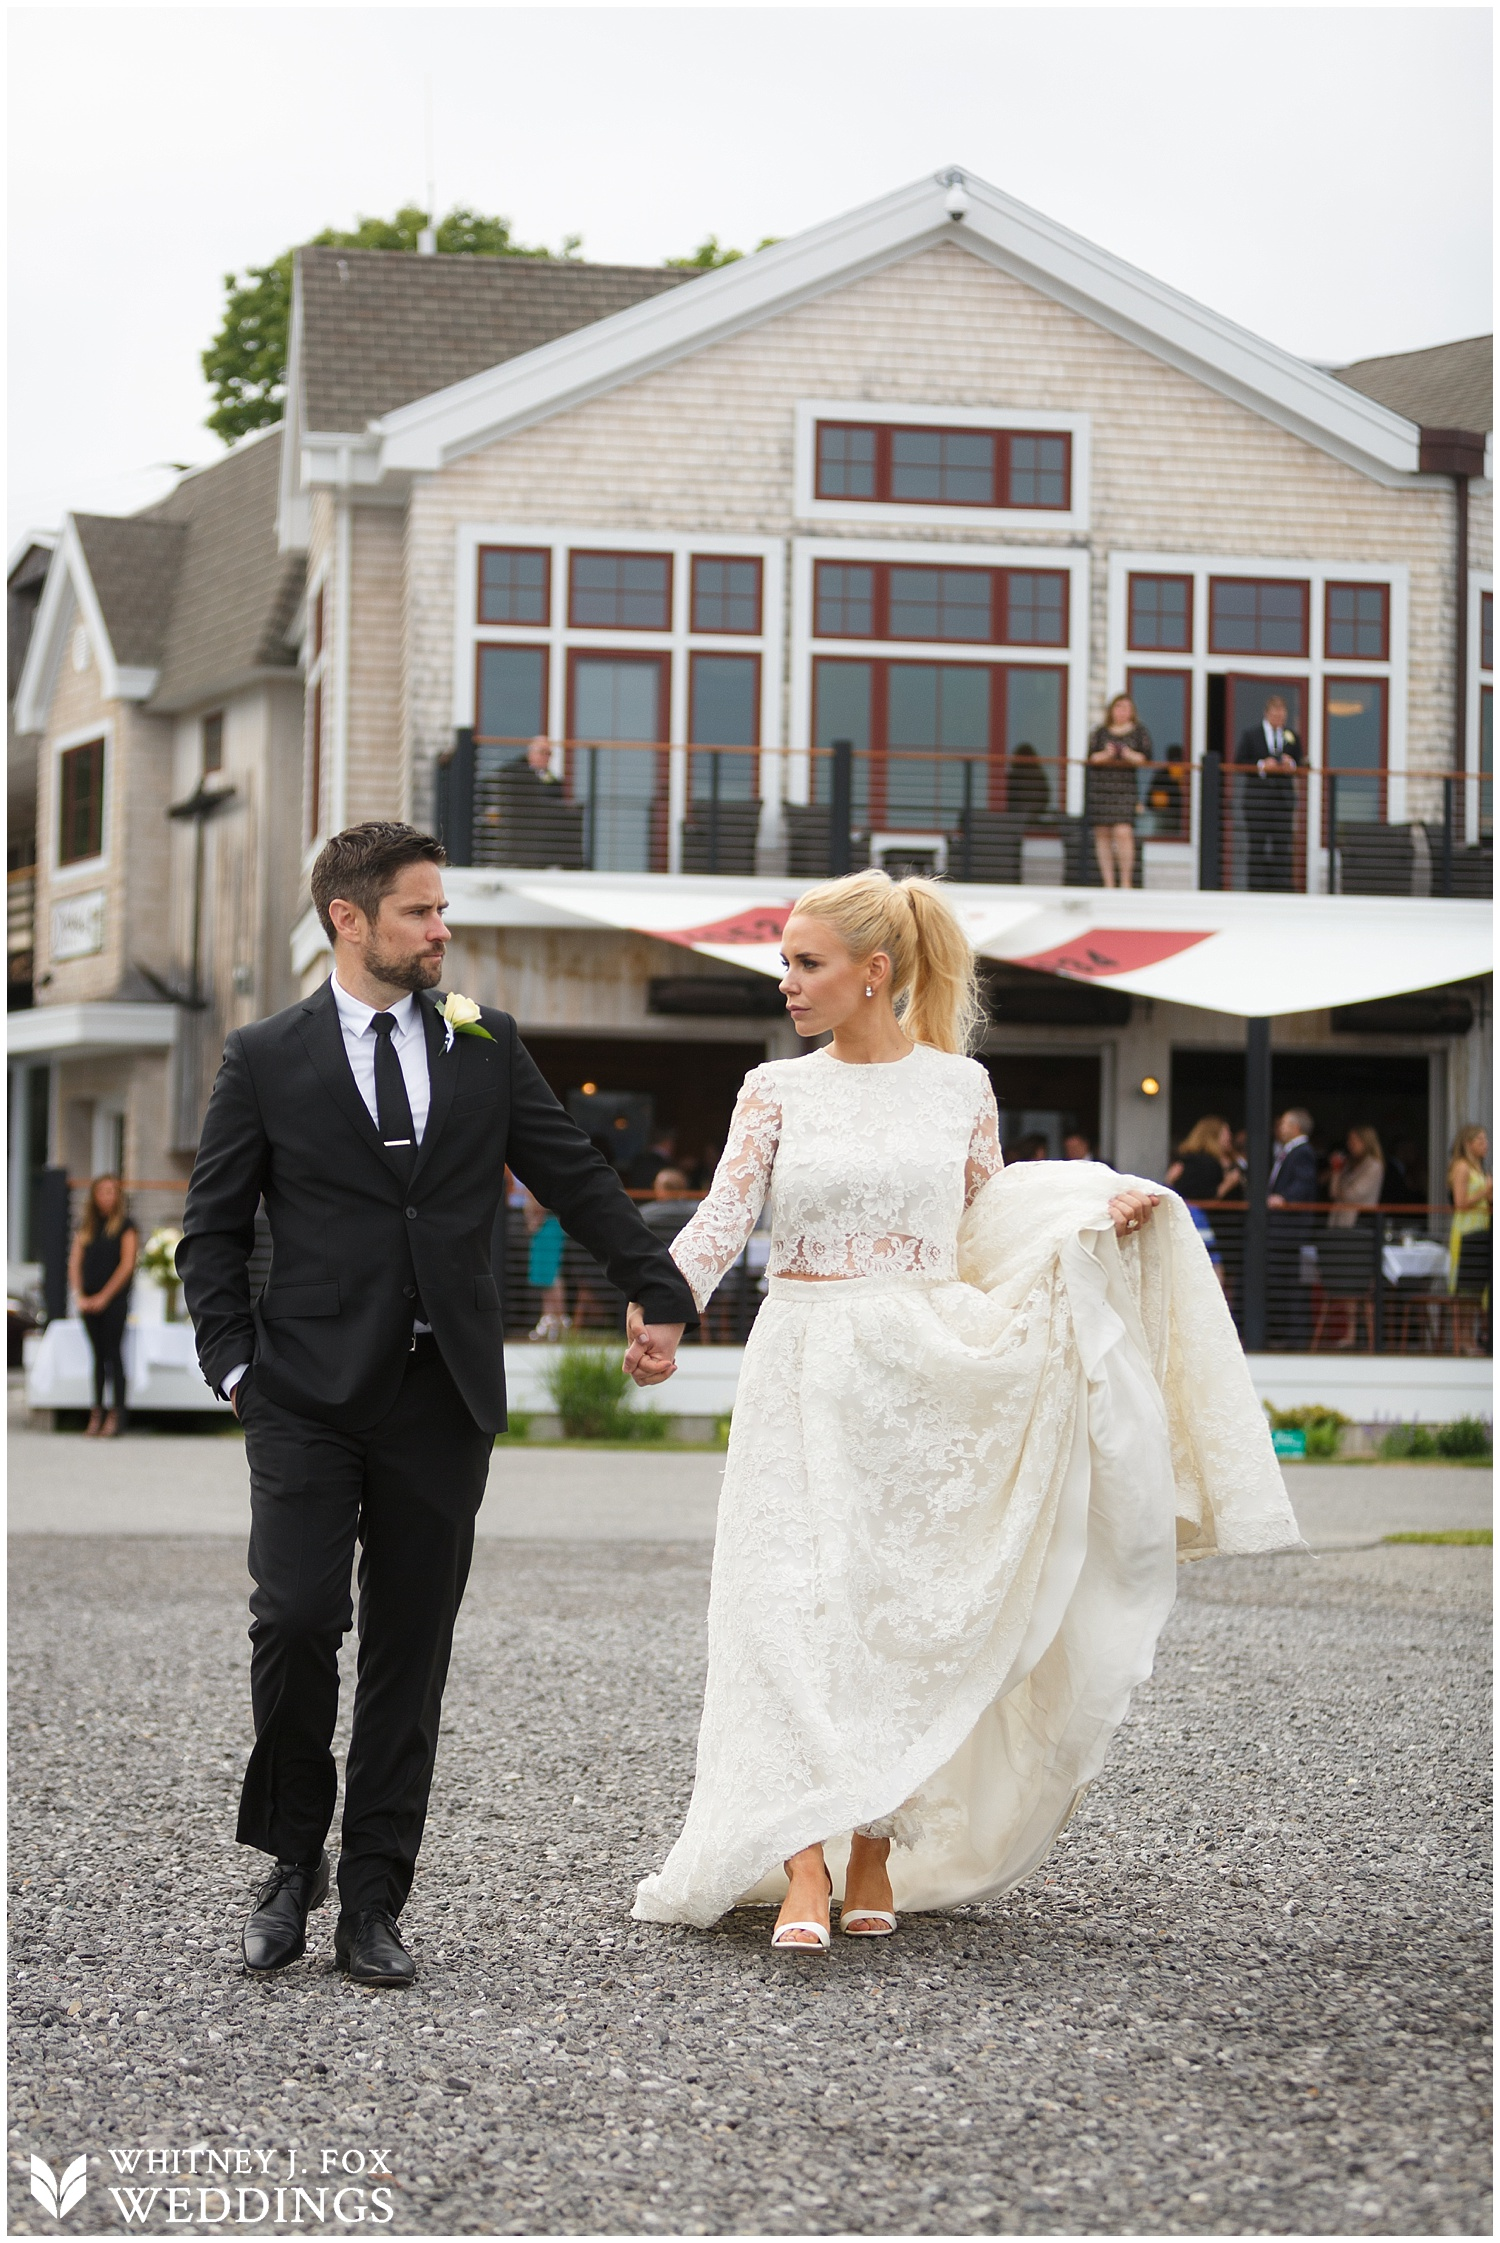 formal_seaside_summer_wedding_dockside_grill_falmouth_maine_photographer_whitney_j_fox_weddings_75.JPG